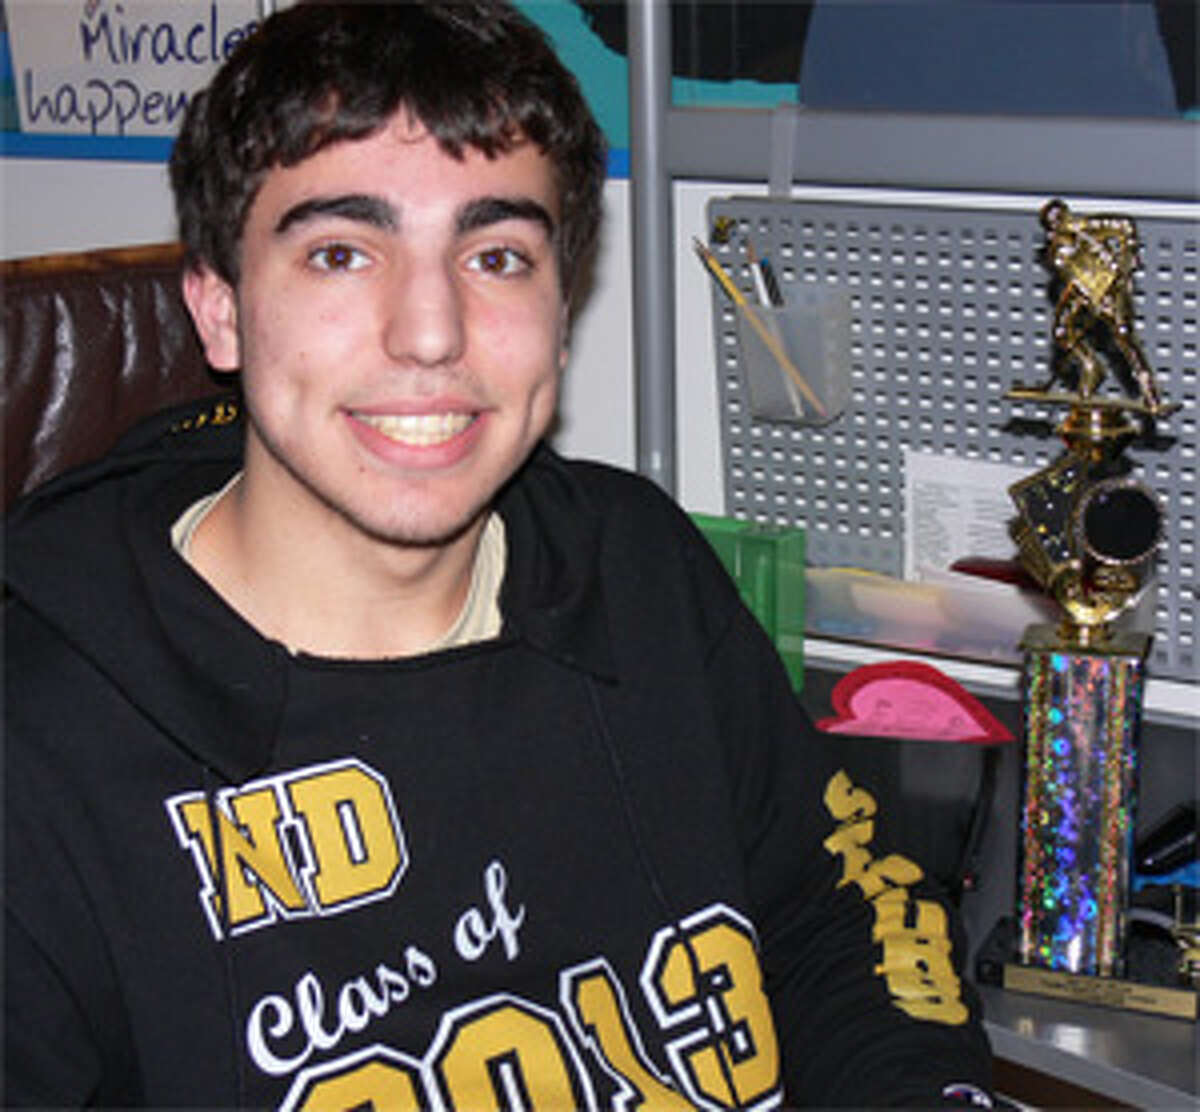 Taylor Chavez, whose story of excelling despite having ADD, next to a hockey trophy in his bedroom.